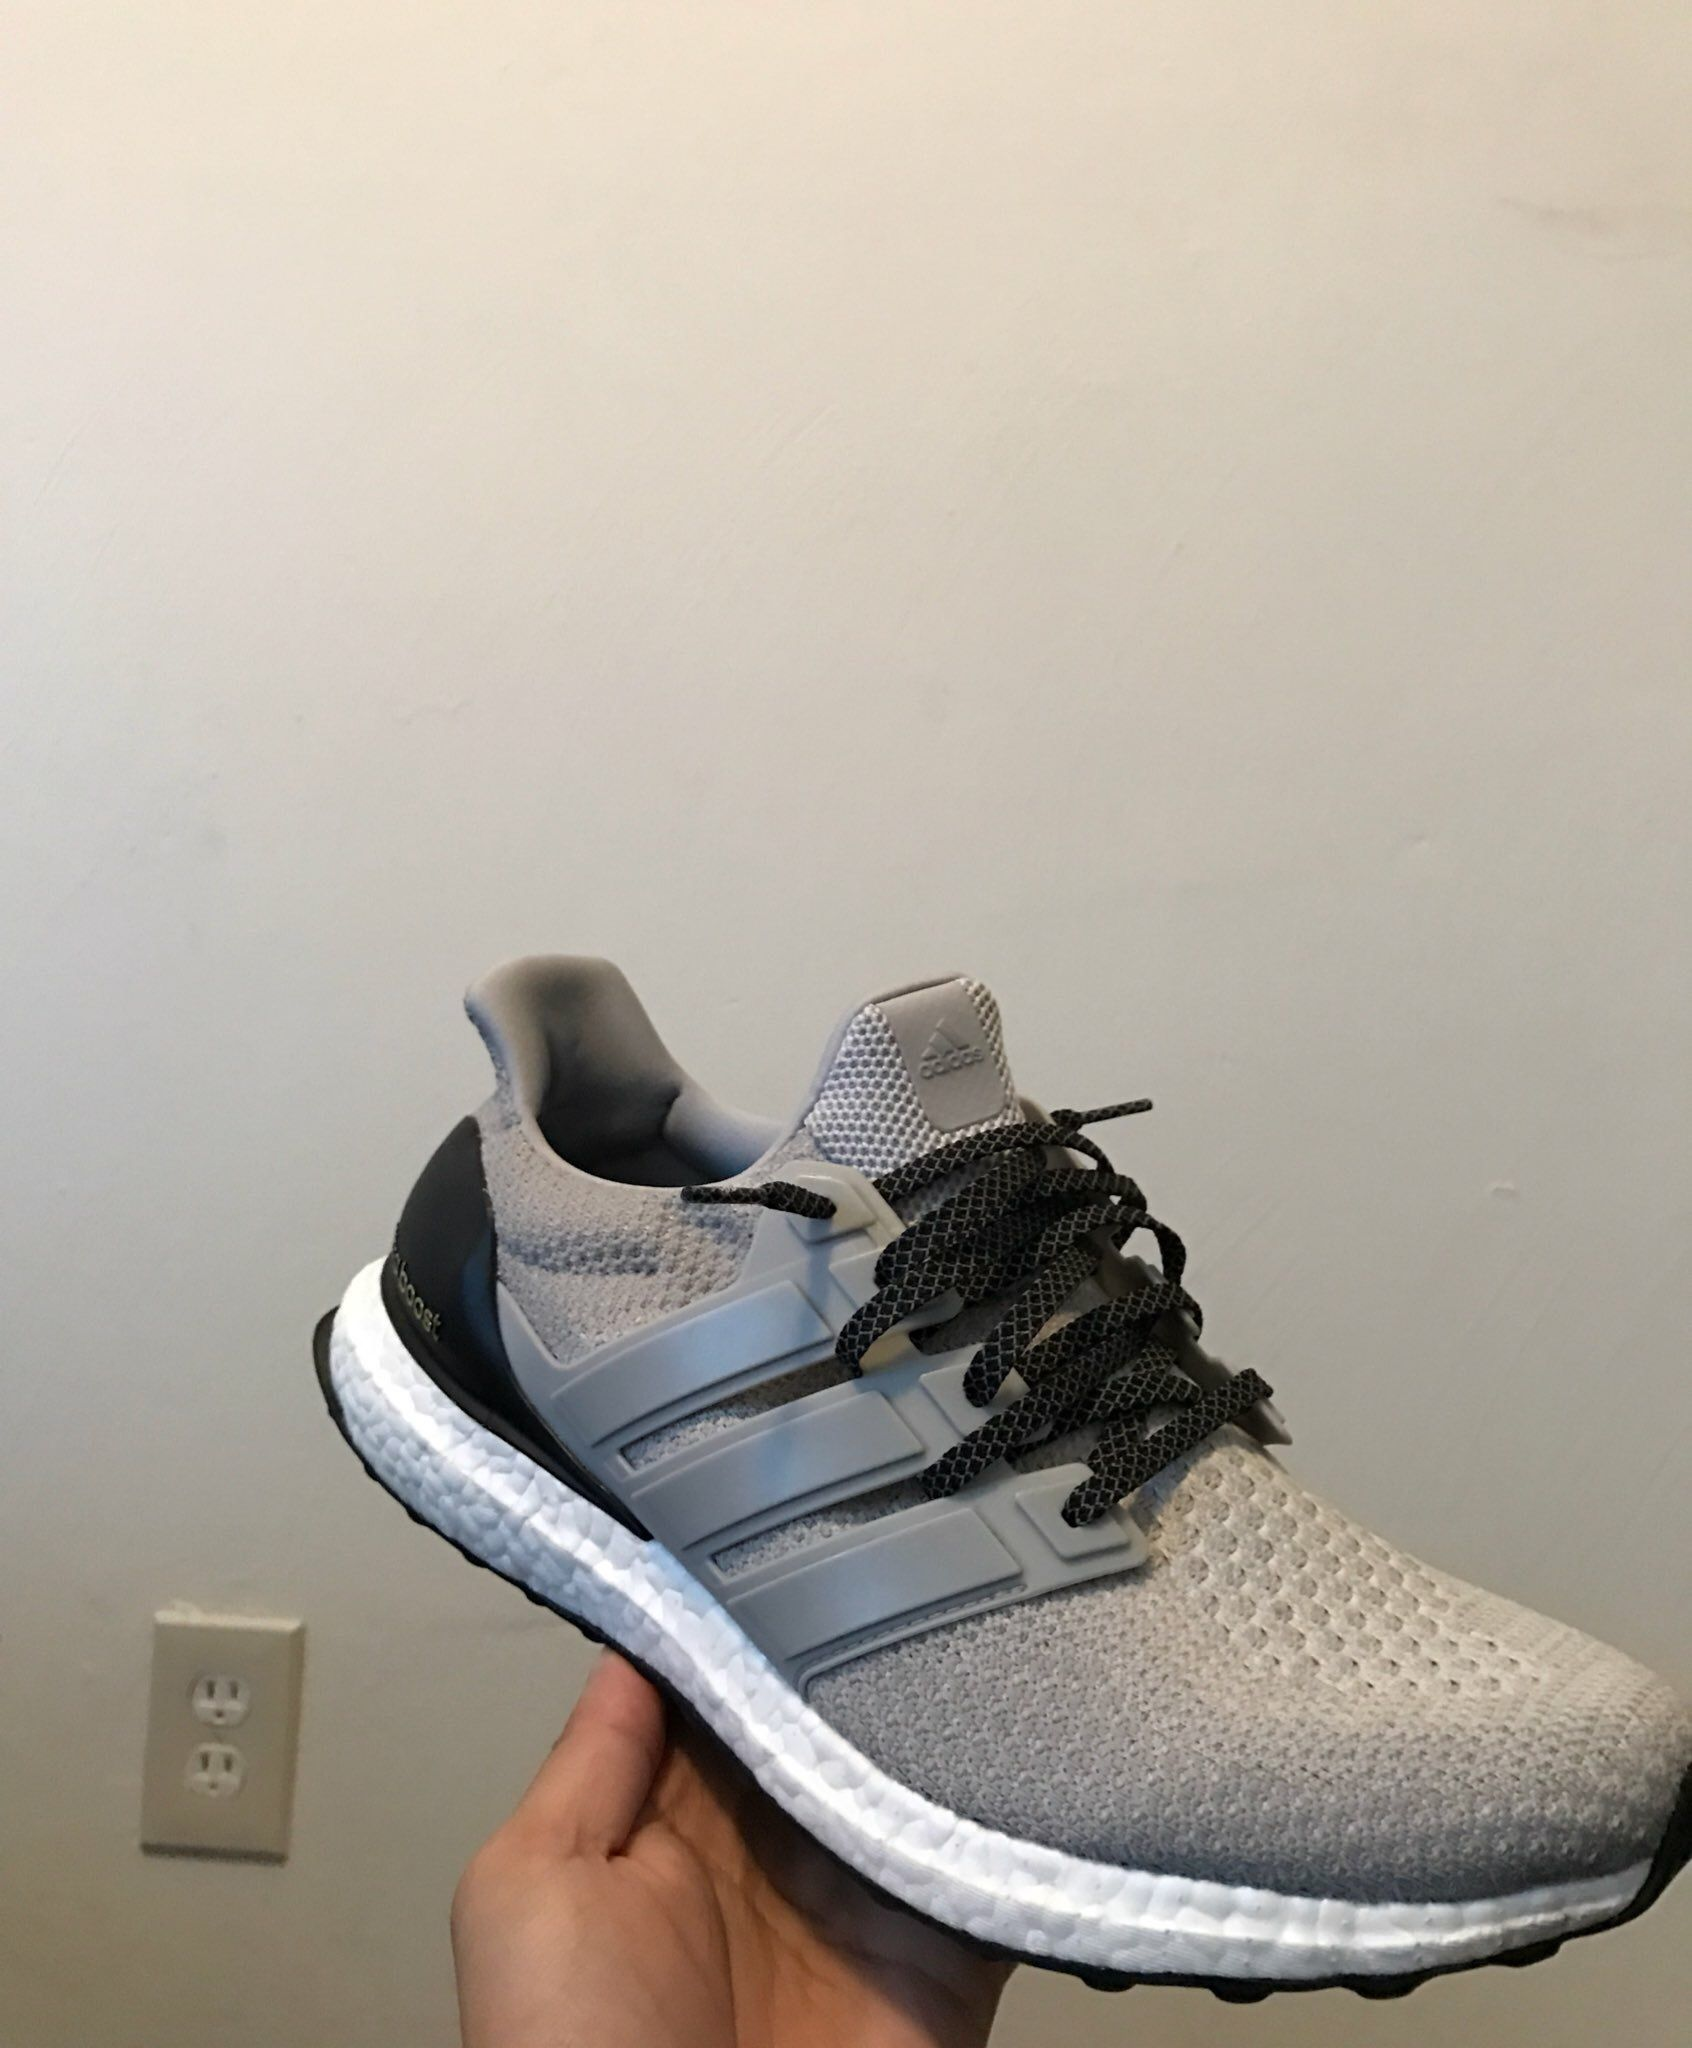 Lace swap on the Clear Onix ultra boost